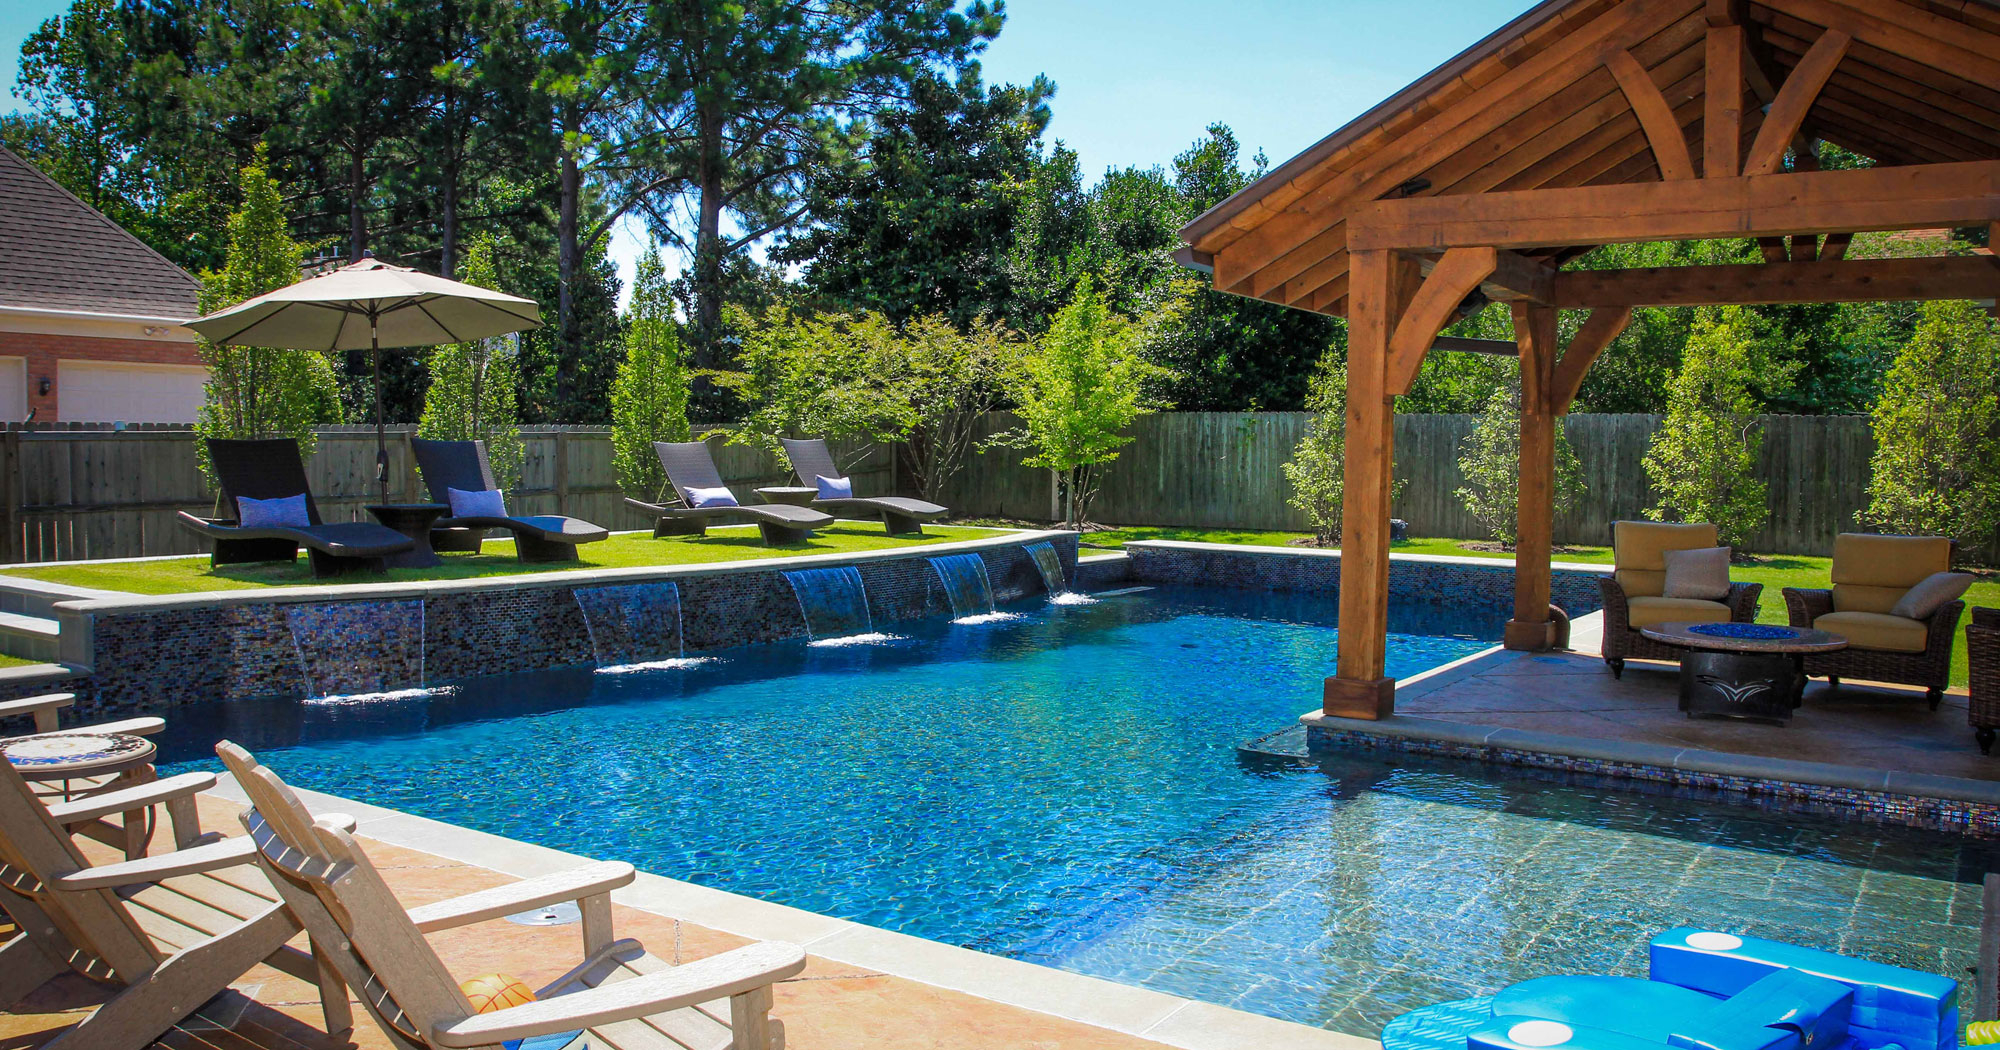 20 Backyard Pool Ideas For The Wealthy Homeowner regarding 10 Awesome Ideas How to Improve Backyard Pool Landscape Ideas